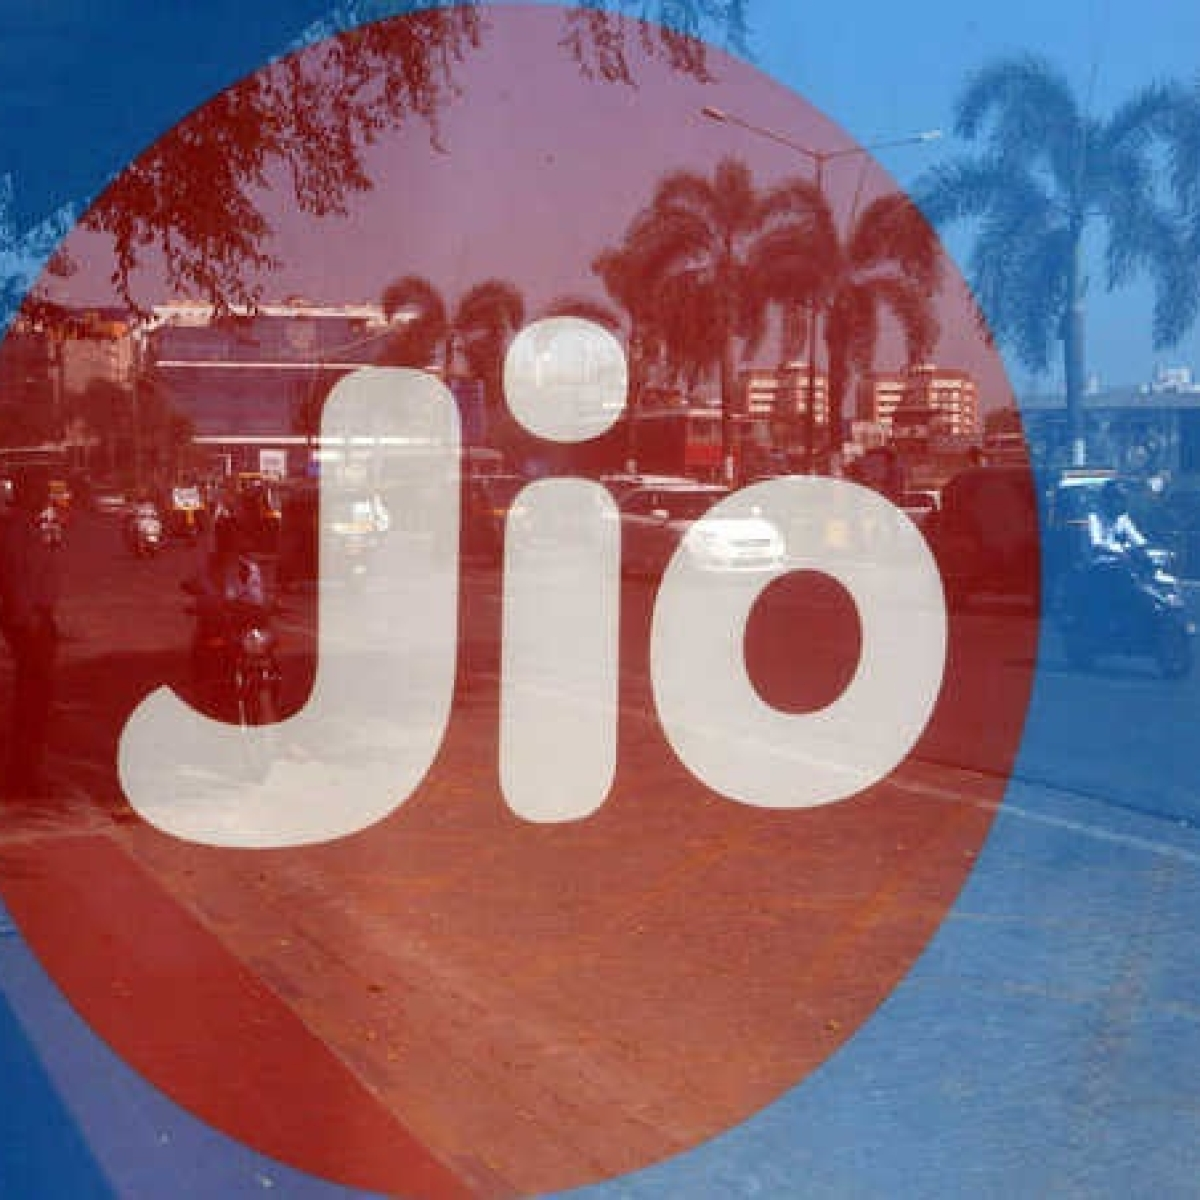 Silver Lake raises stake in Jio Platforms to 2.08% for additional Rs 4,546.80 cr